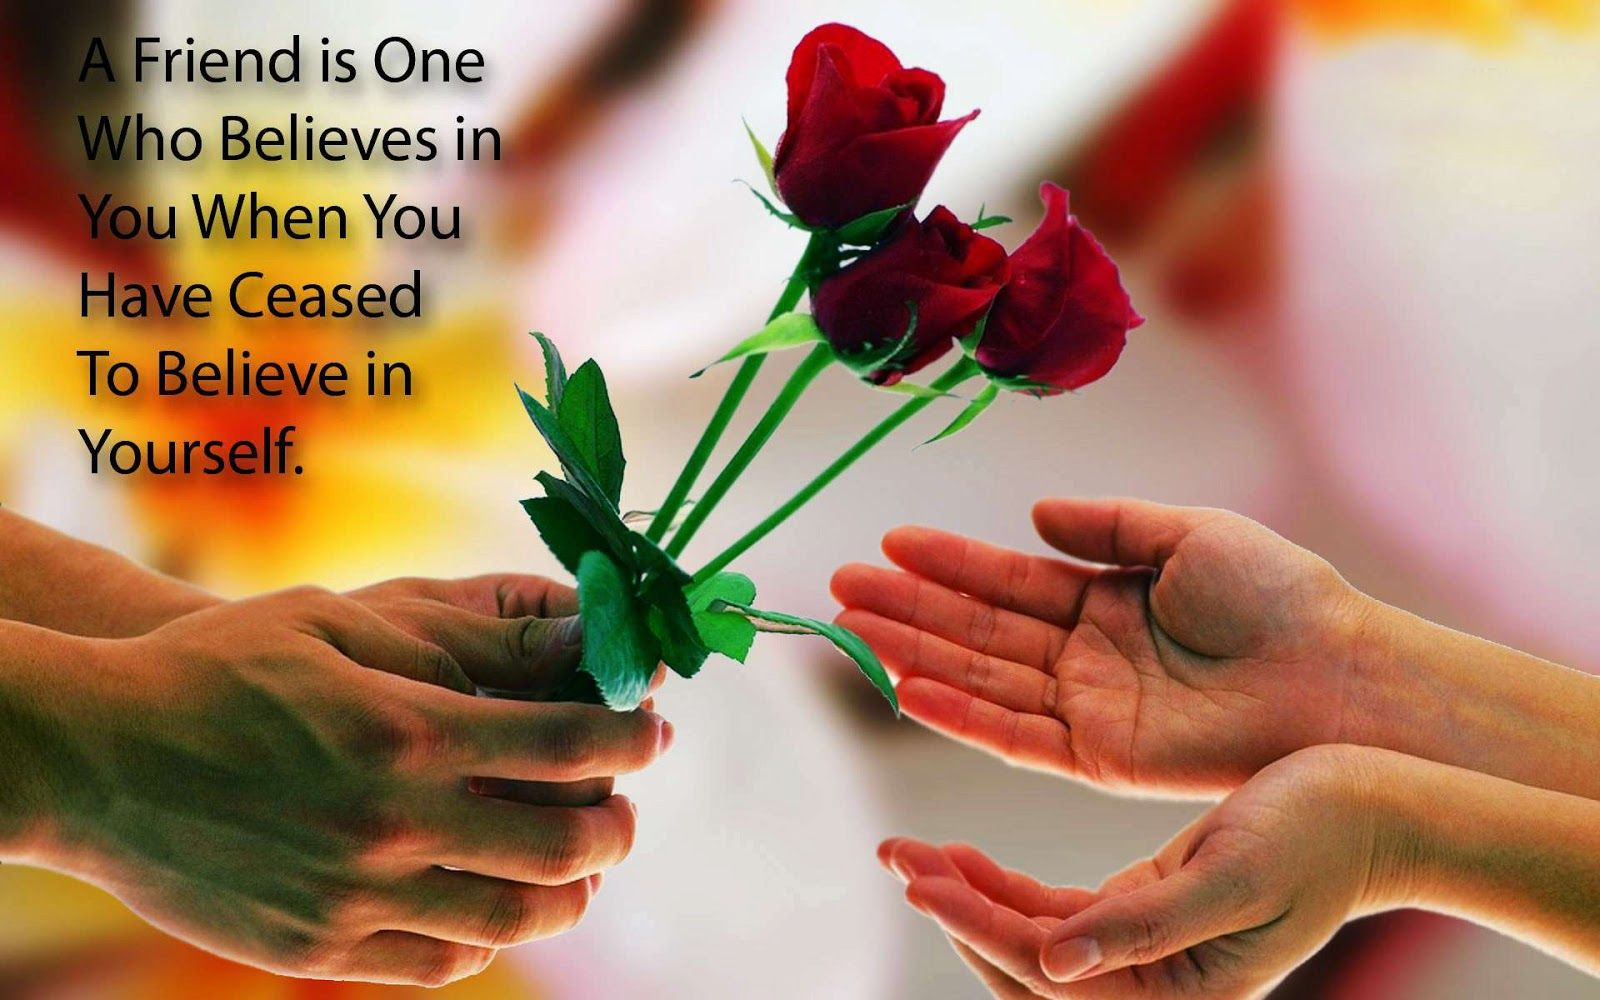 Happy Friendship Day Wishes For All Friends Friendship Quotes Images Friendship Images Friendship Quotes Wallpapers Friendship rose day images for friends